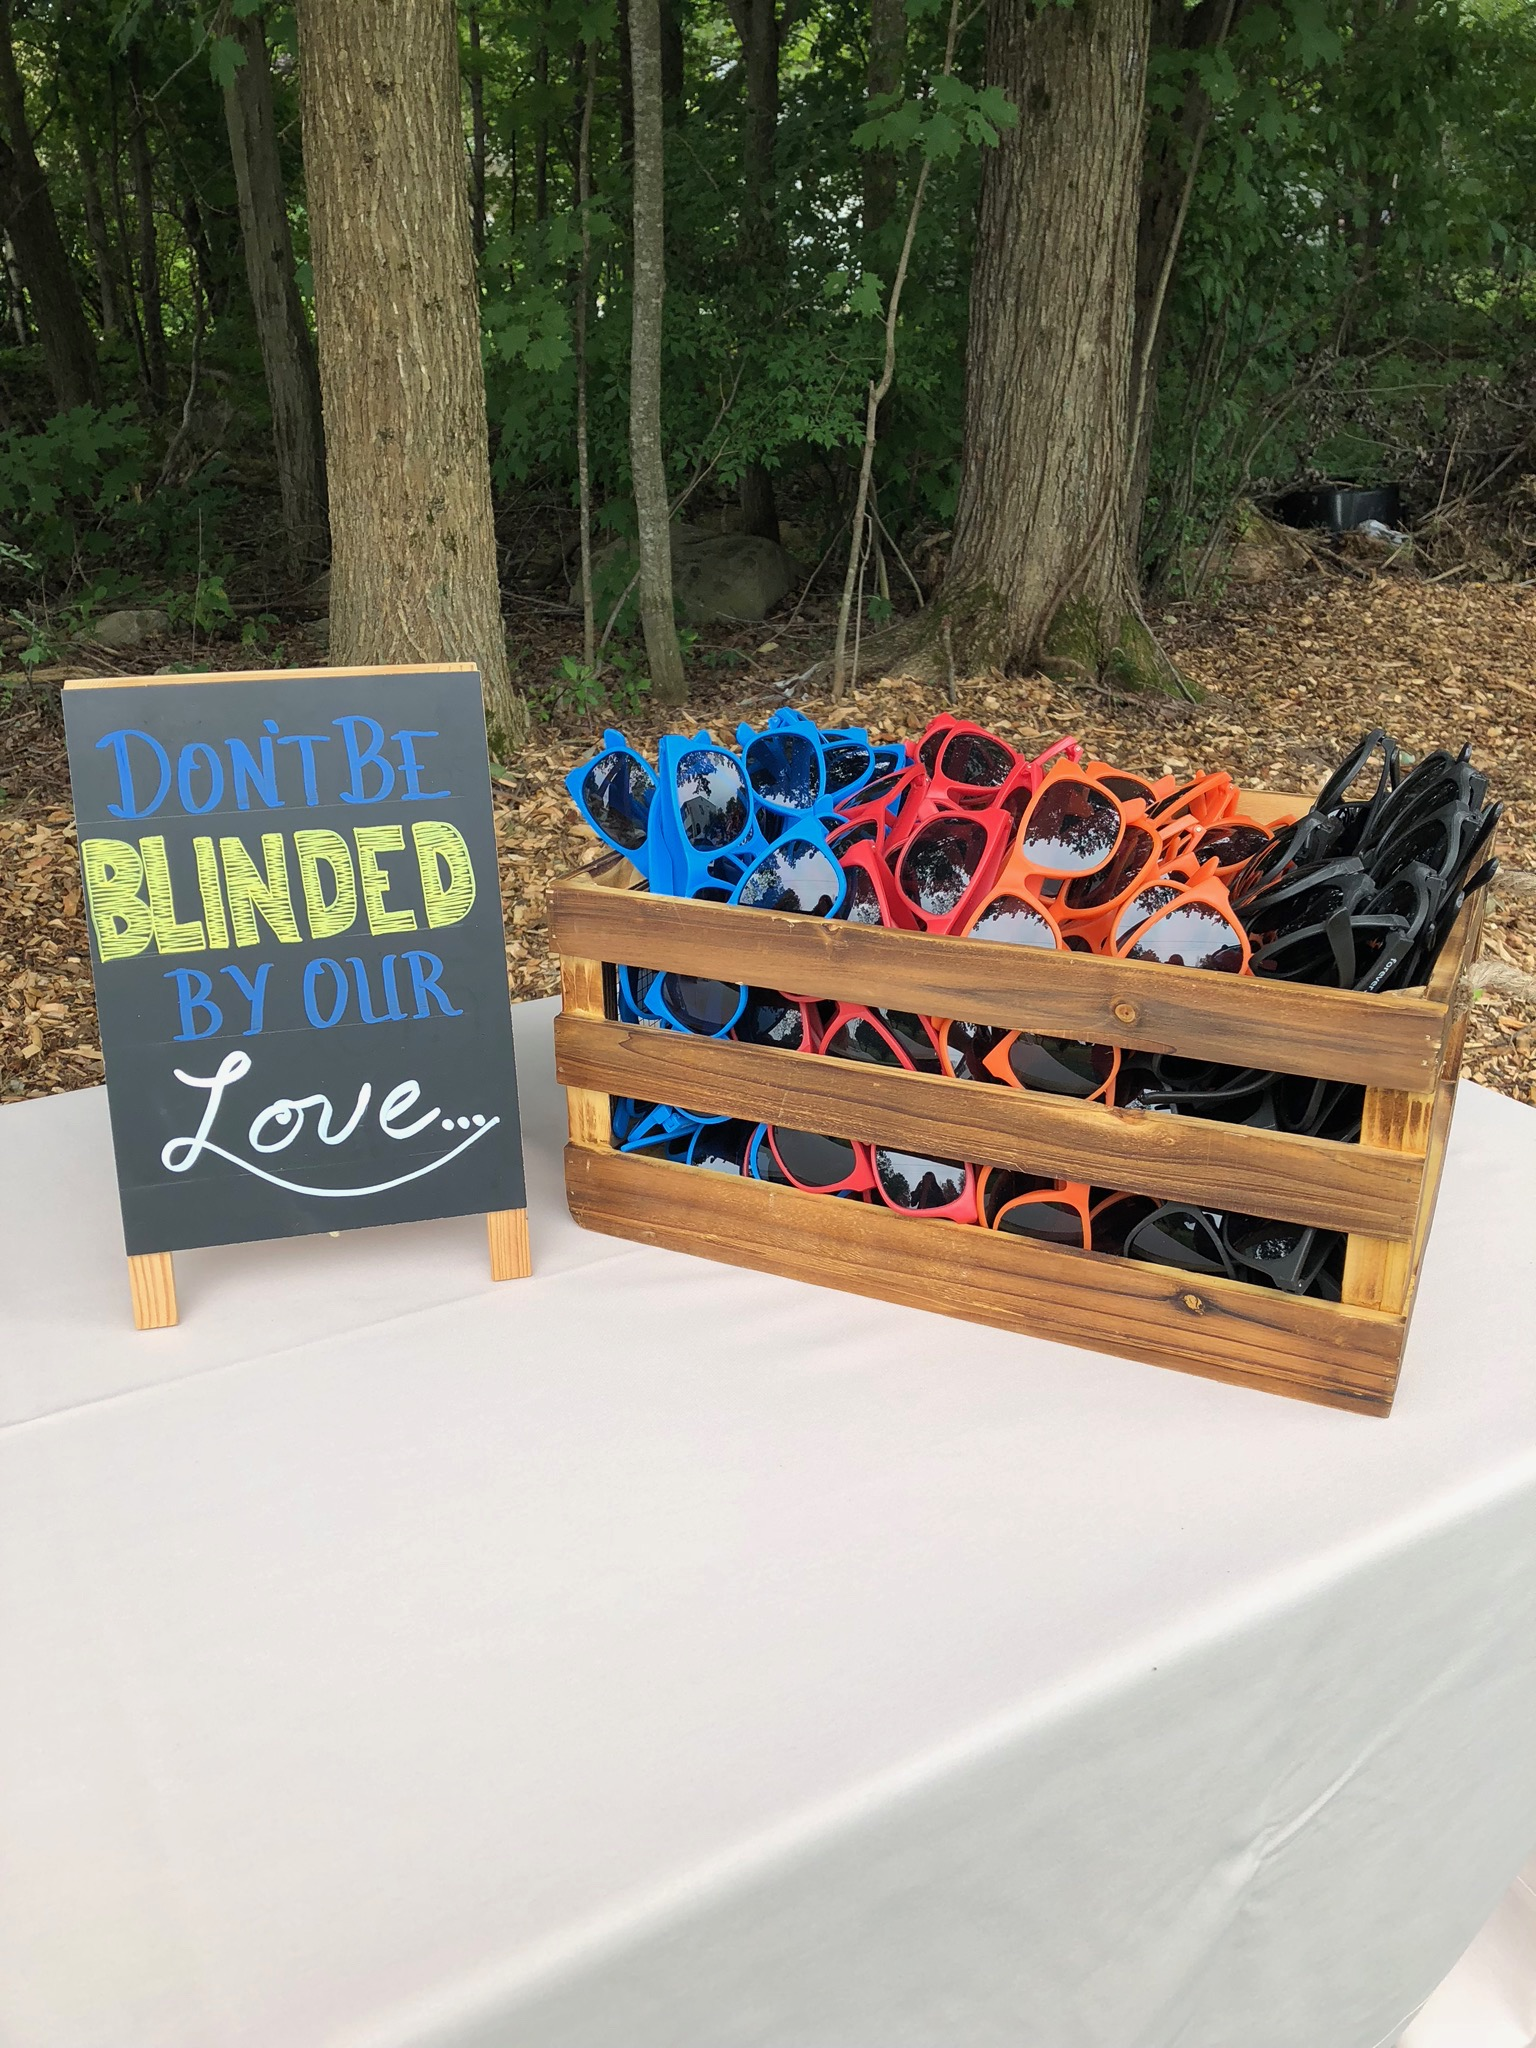 Don't be blinded by our love signs for a wedding ceremony and sunglasses favor - Pearl Weddings & Events